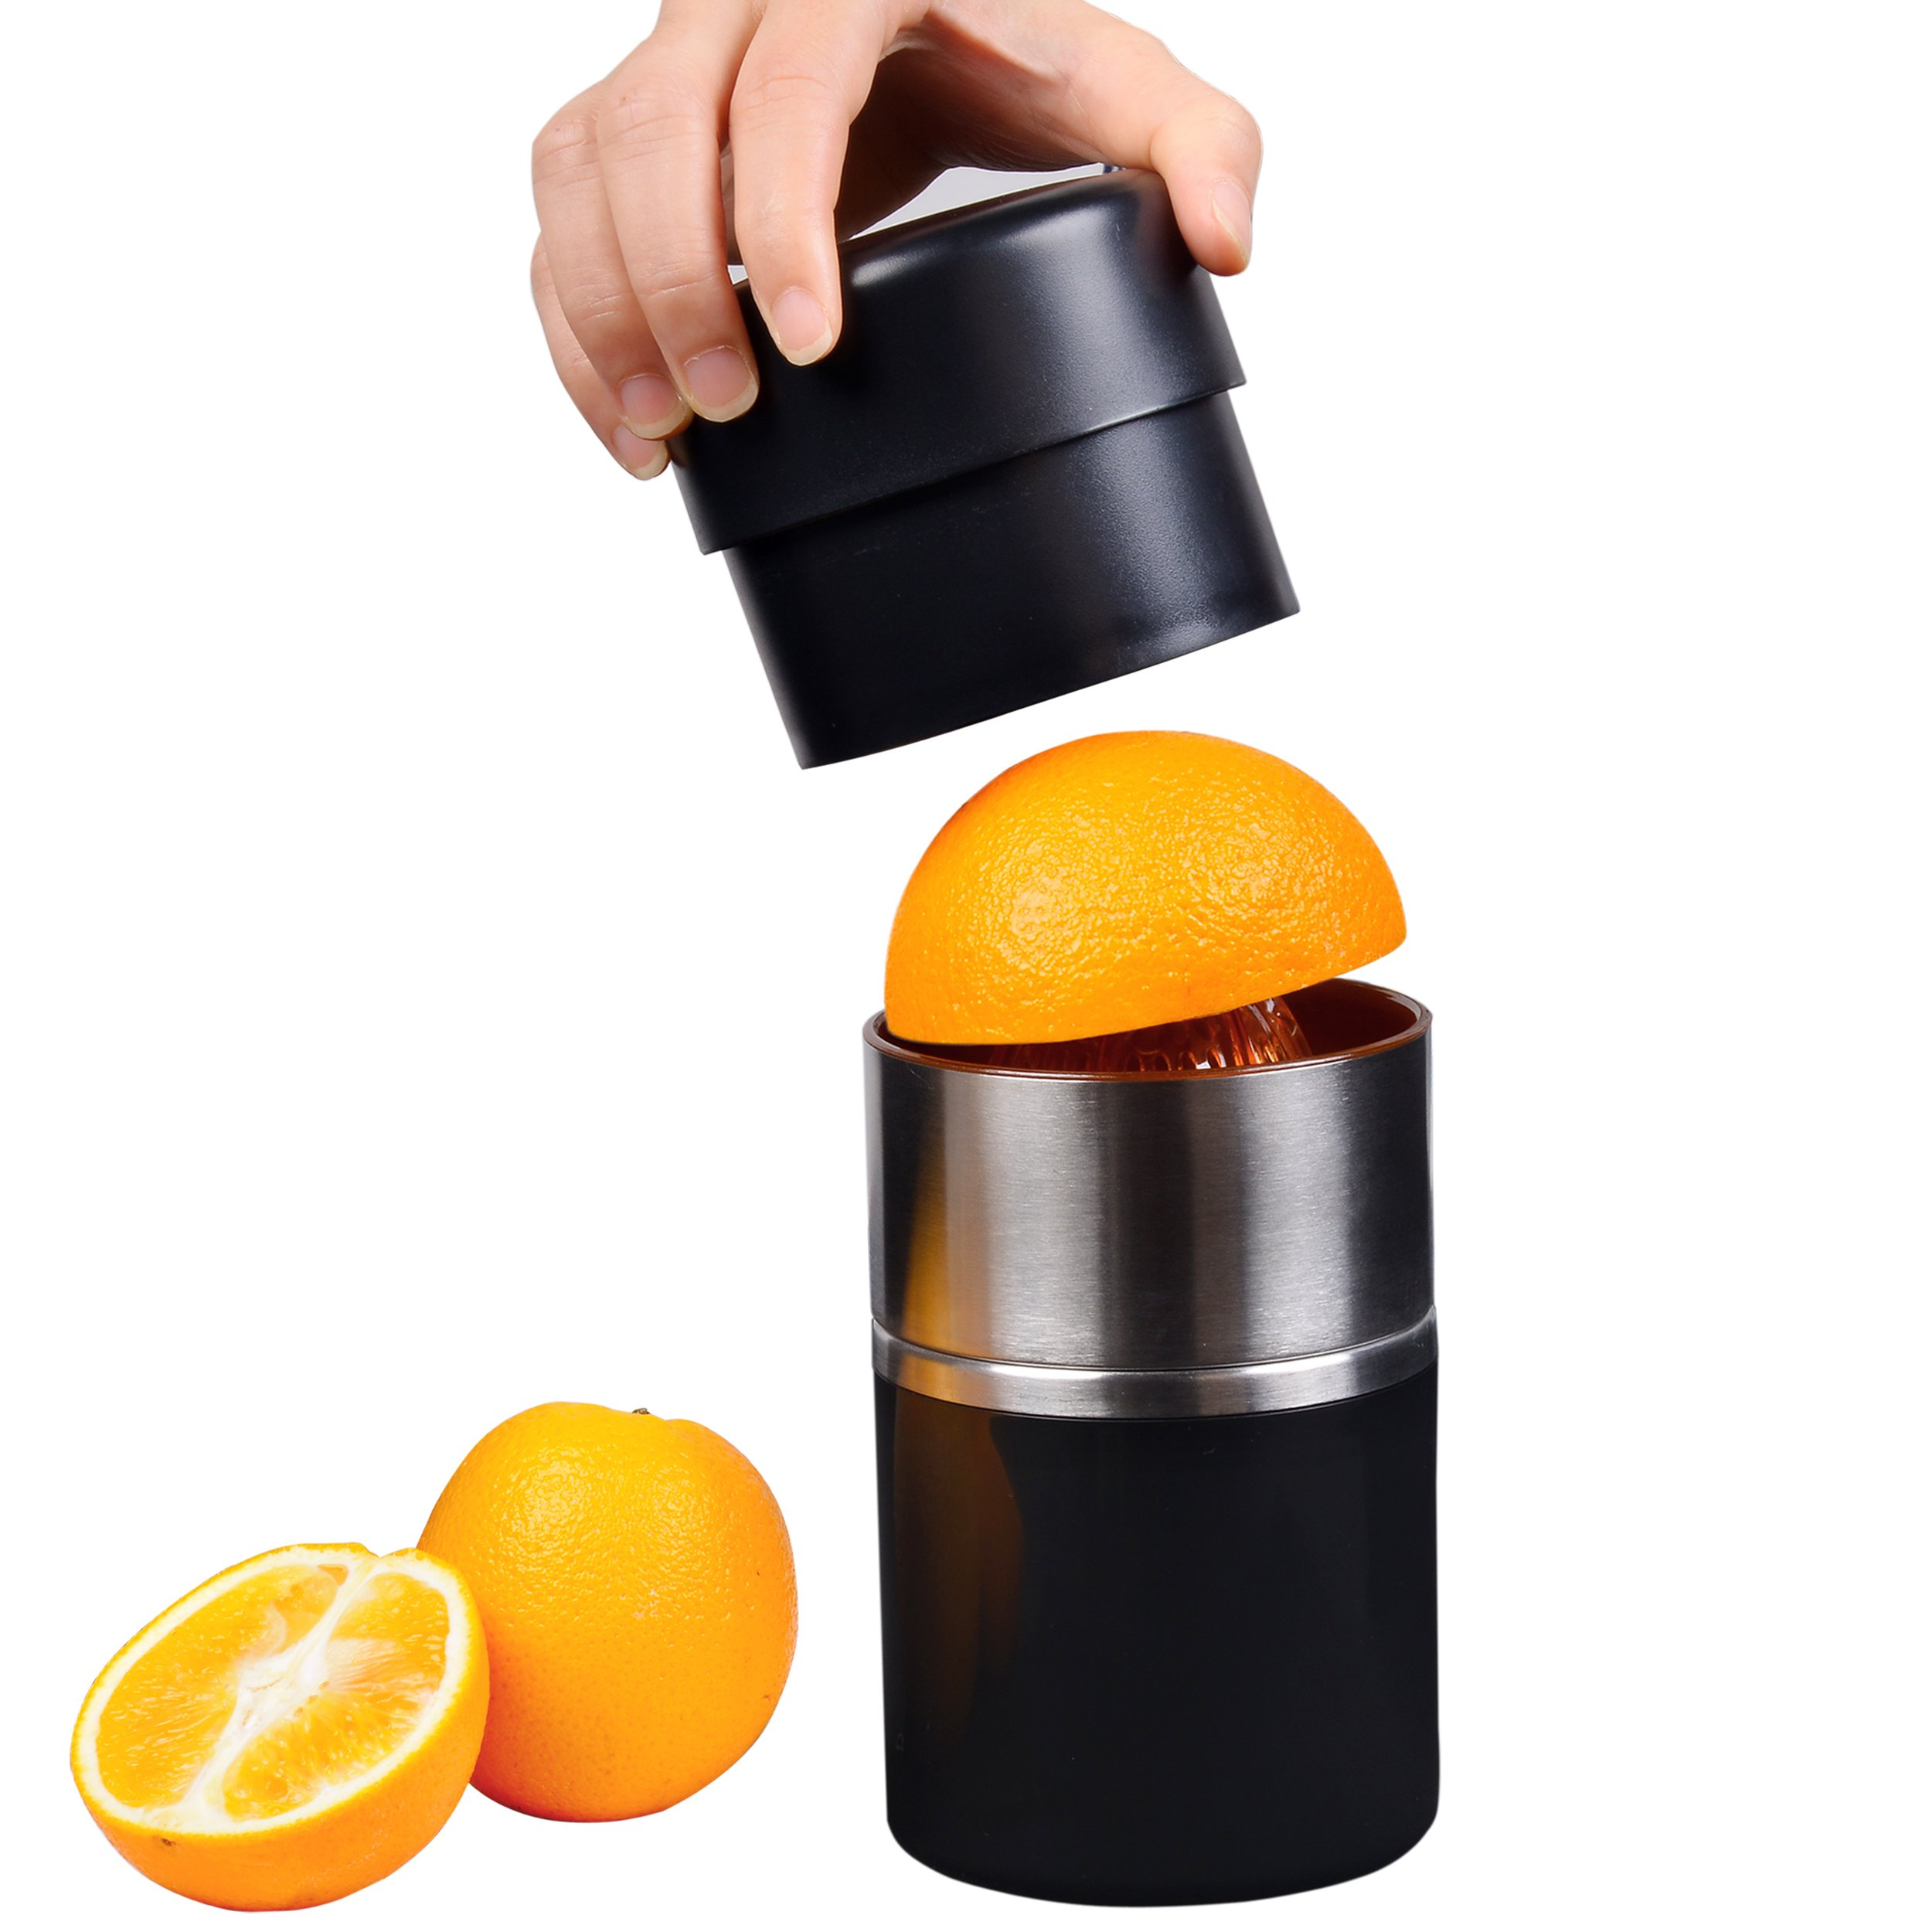 Manual Juicer, Citrus Lemon Grapefruit Press Squeezer, Stainless Steel Hand Juicer with Strainer Container, Black